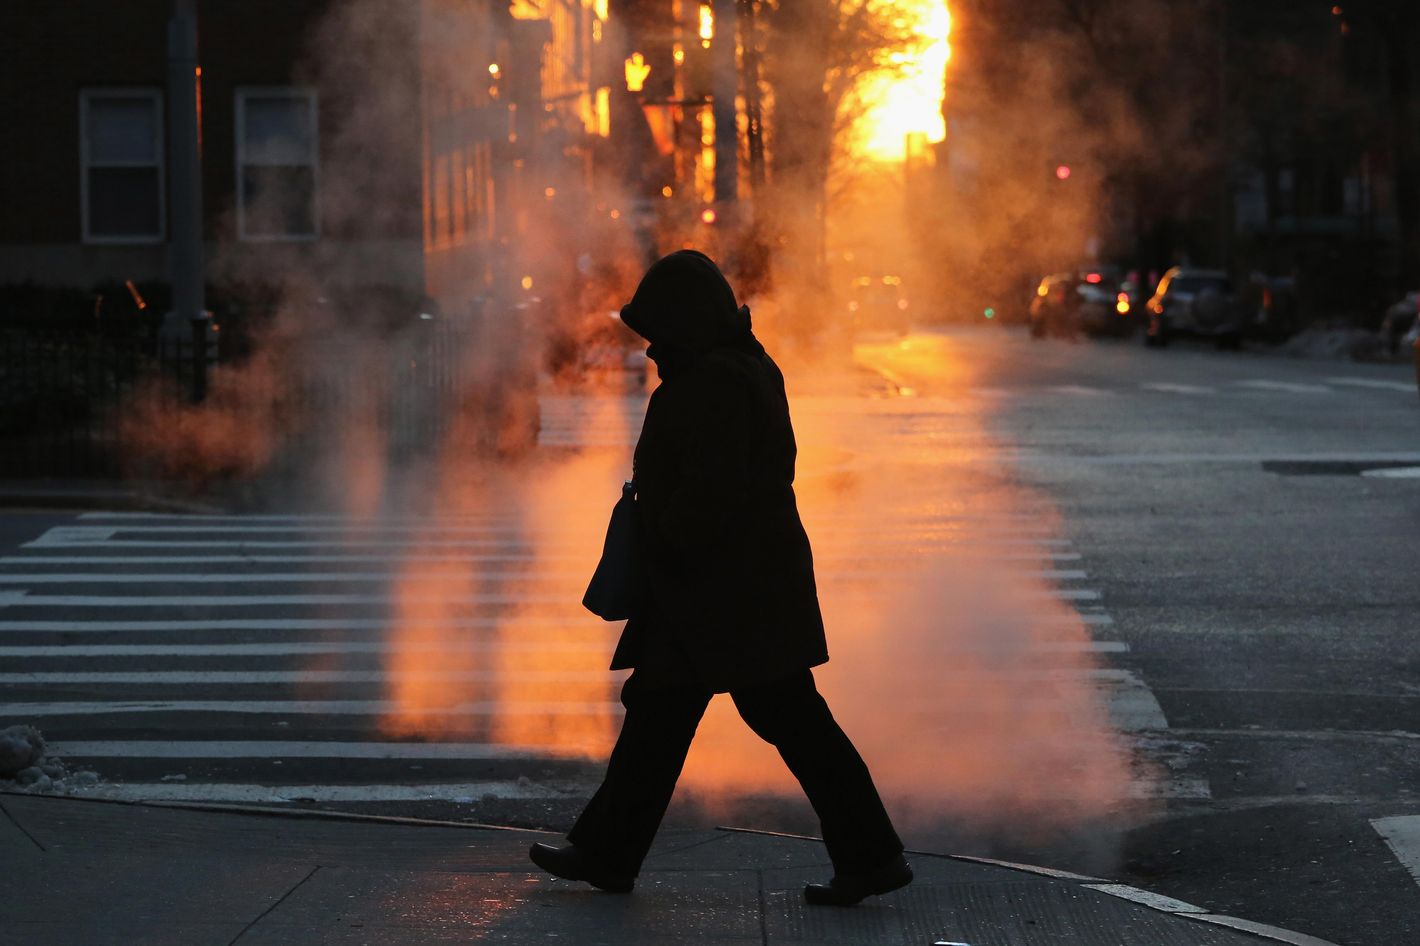 NEW YORK, NY - JANUARY 07:  A pedestrian braves the cold on January 7, 2014 in New York City. A 'polar vortex'  of frigid air centered on the North Pole dropped temperatures to a record low 4 degrees in New York City. (Photo by John Moore/Getty Images)